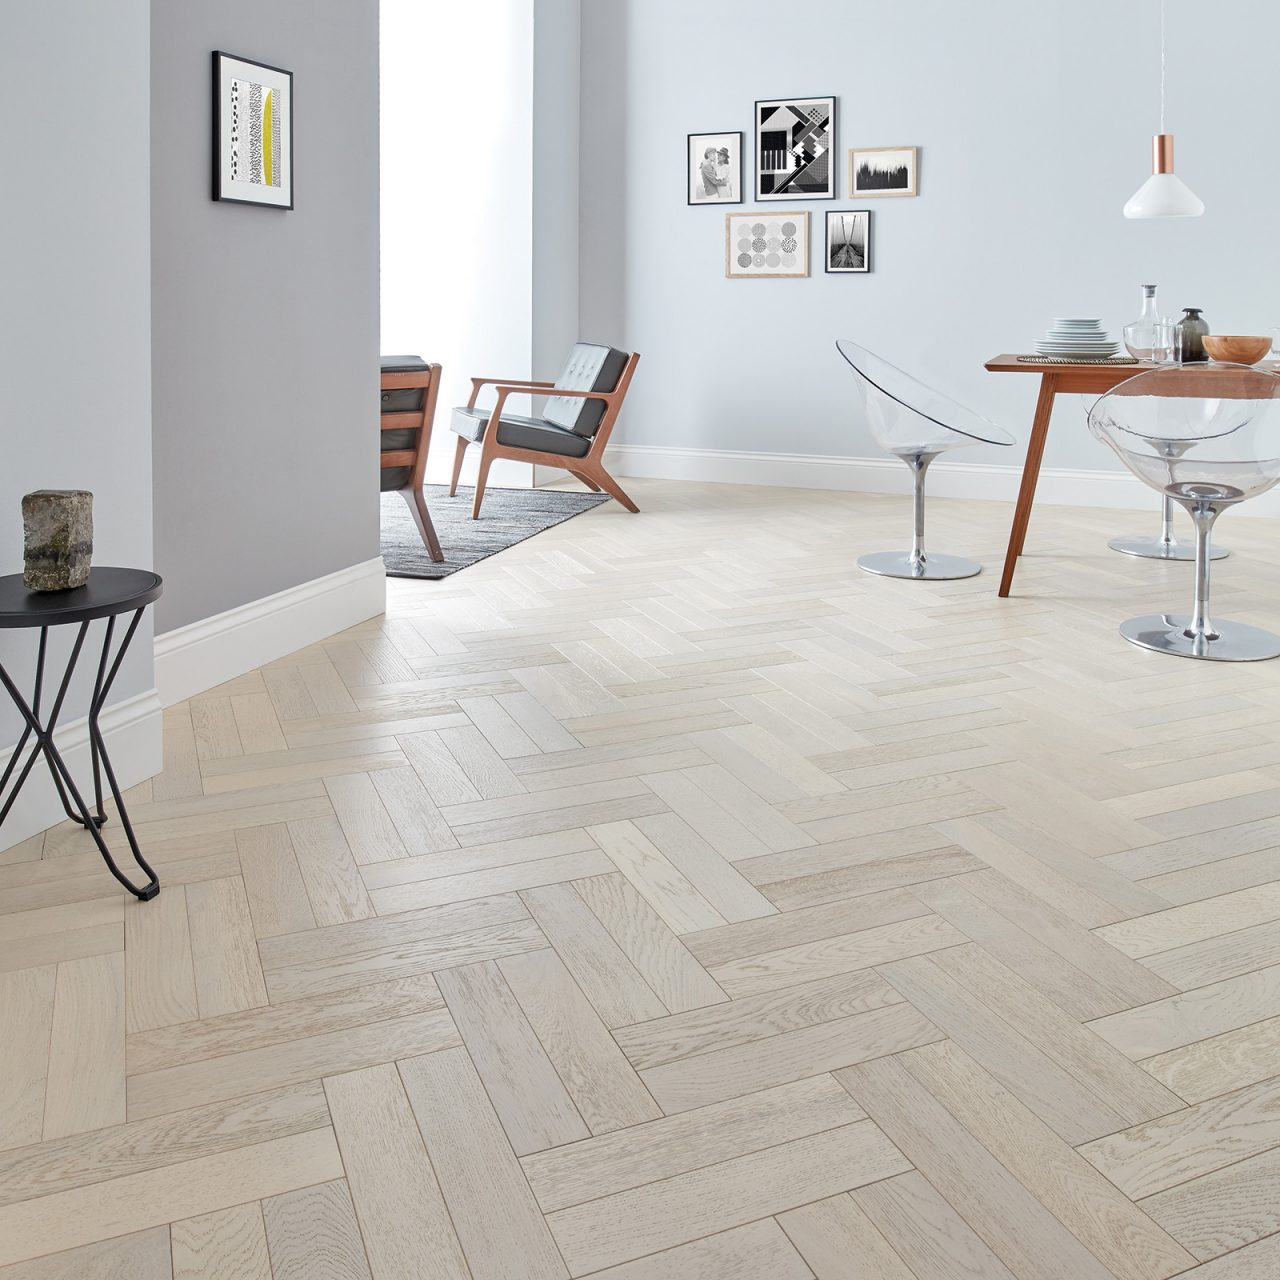 Modern living room with white engineered parquet flooring.